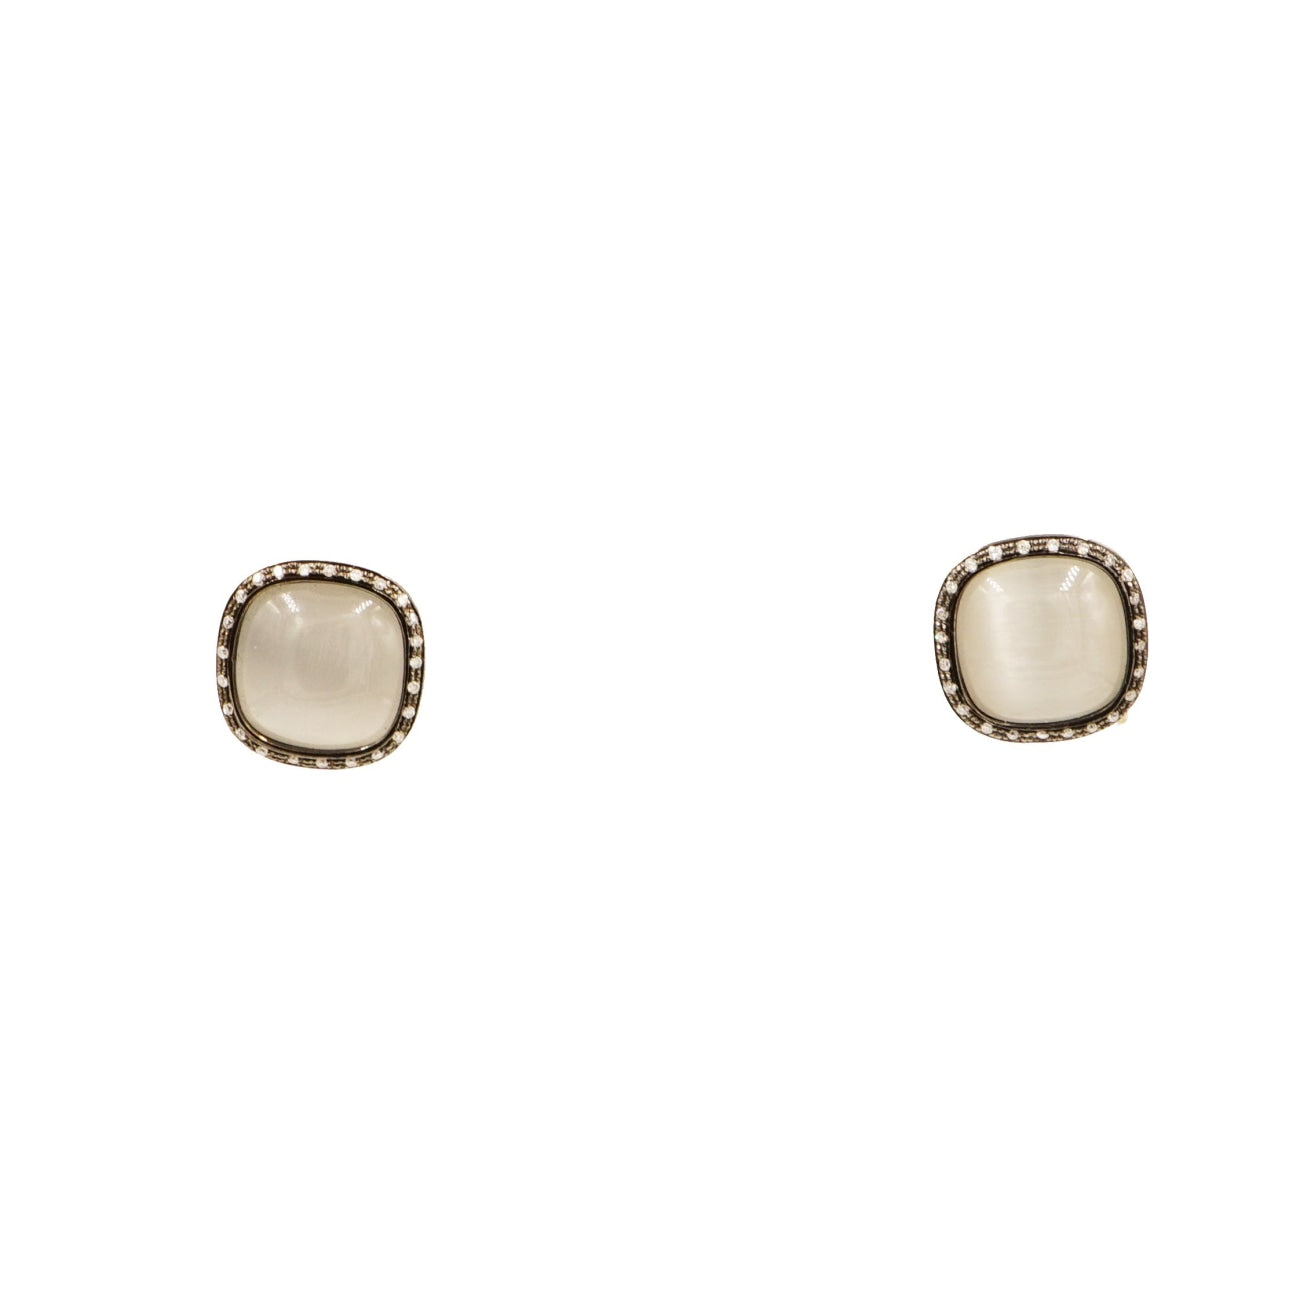 Manfredi Jewels Jewelry - Gray Quartz & Diamond Stud Earrings | Manfredi Jewels